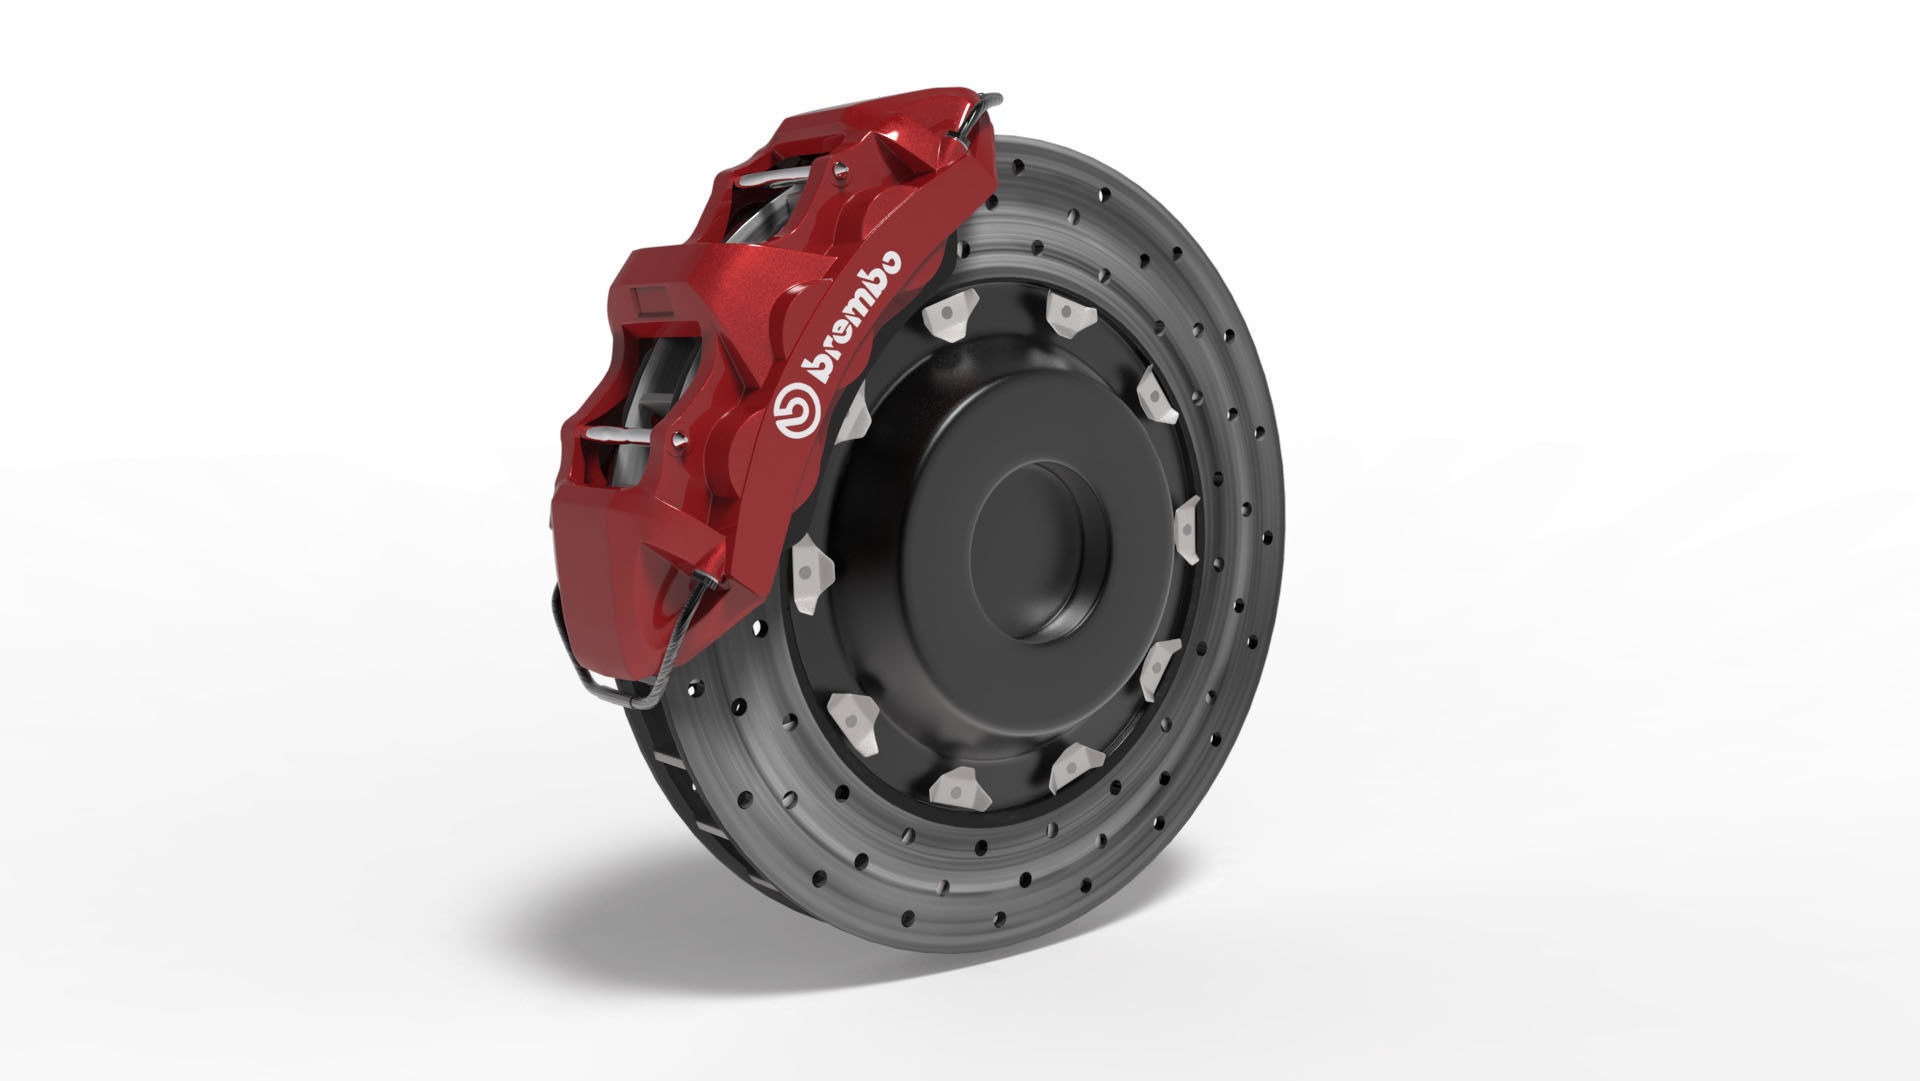 Brembo Brake Pads >> Brembo Caliper 3D Model Game ready .max - CGTrader.com